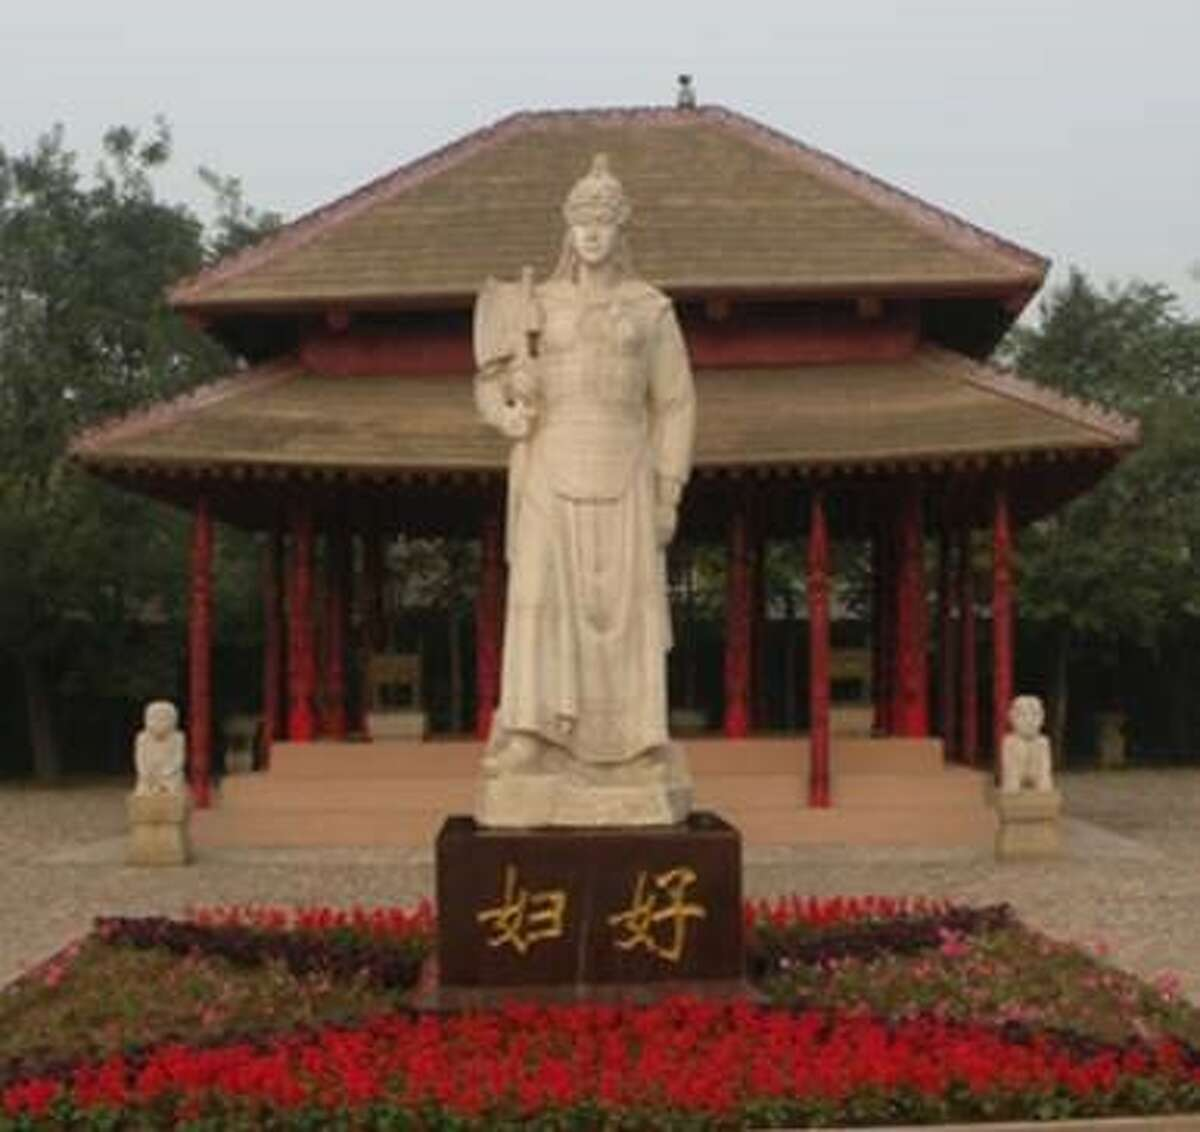 Bob and Nancy Engelhardt-Moore visited the last capital of the Shang Dynasty, one China's largest archaeological sites, and took this photo of the Lady Fu Hao statute. They will be the featured speakers at the Jan. 15 program of the Fort Bend Archeological Society.